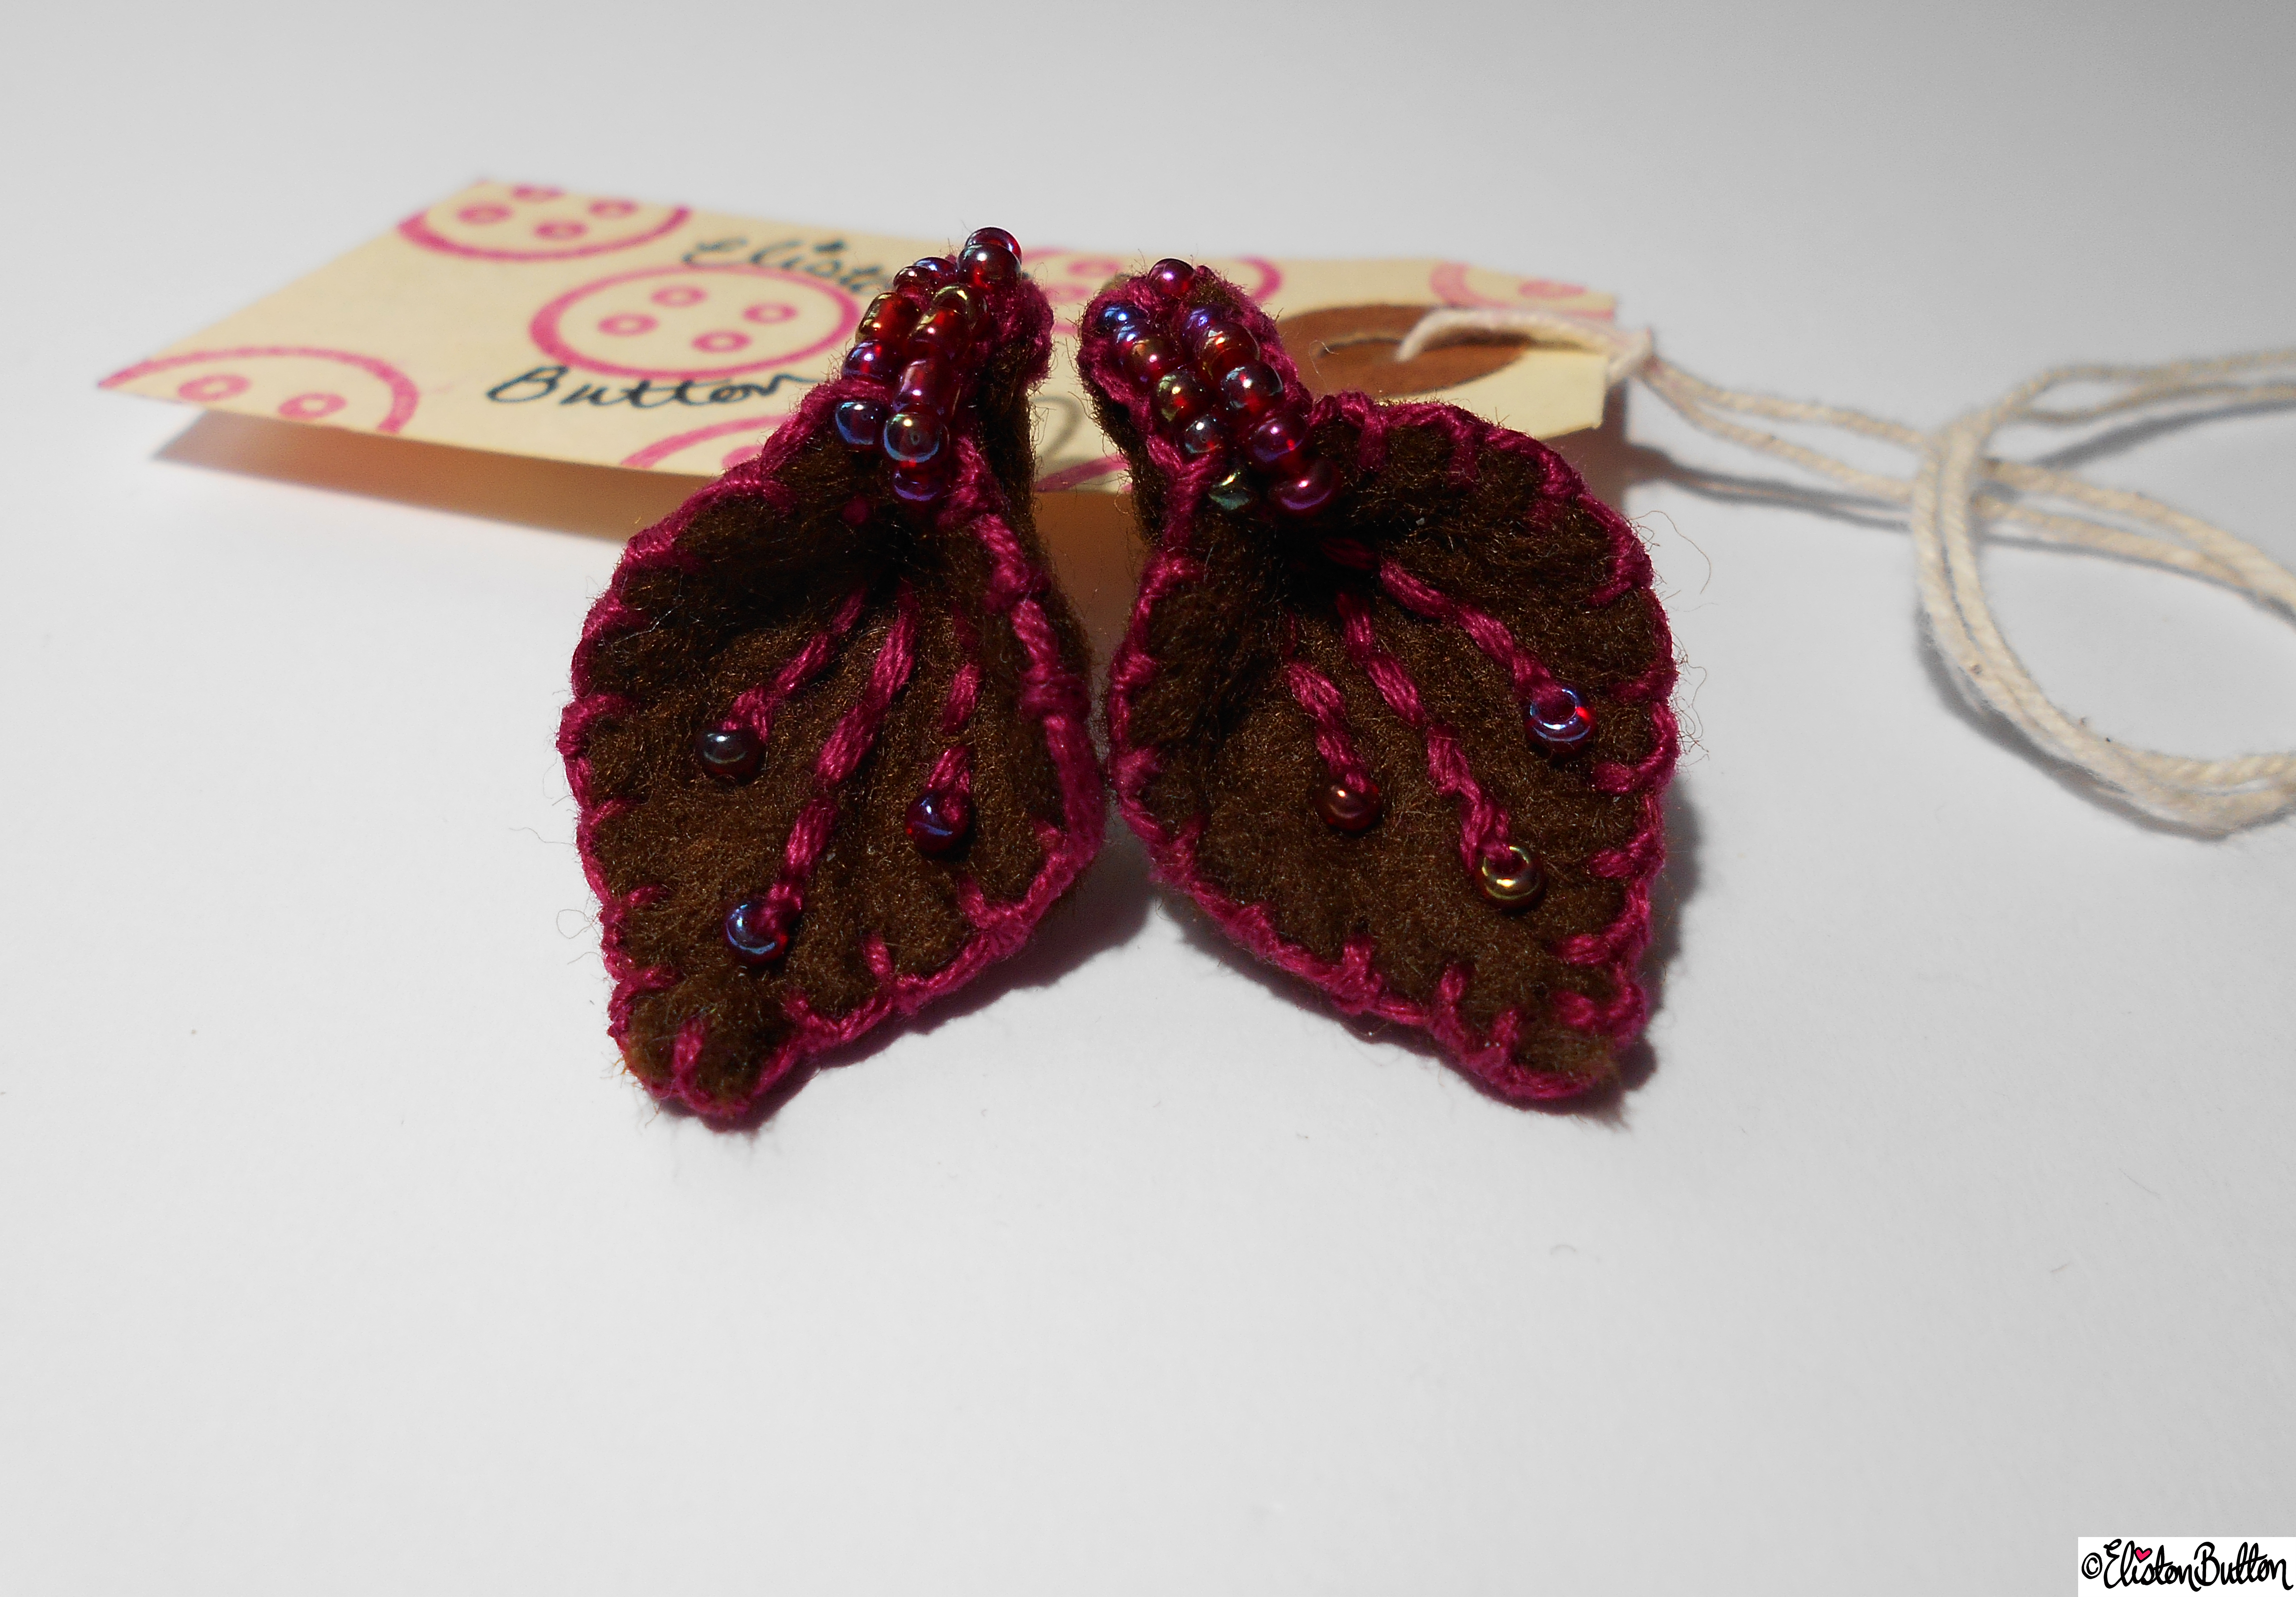 Raspberry and Chocolate  Felt Earrings and Tag - Create 28 - No.2 - Embroidered Felt Petal Earrings at www.elistonbutton.com - Eliston Button - That Crafty Kid – Art, Design, Craft & Adventure.